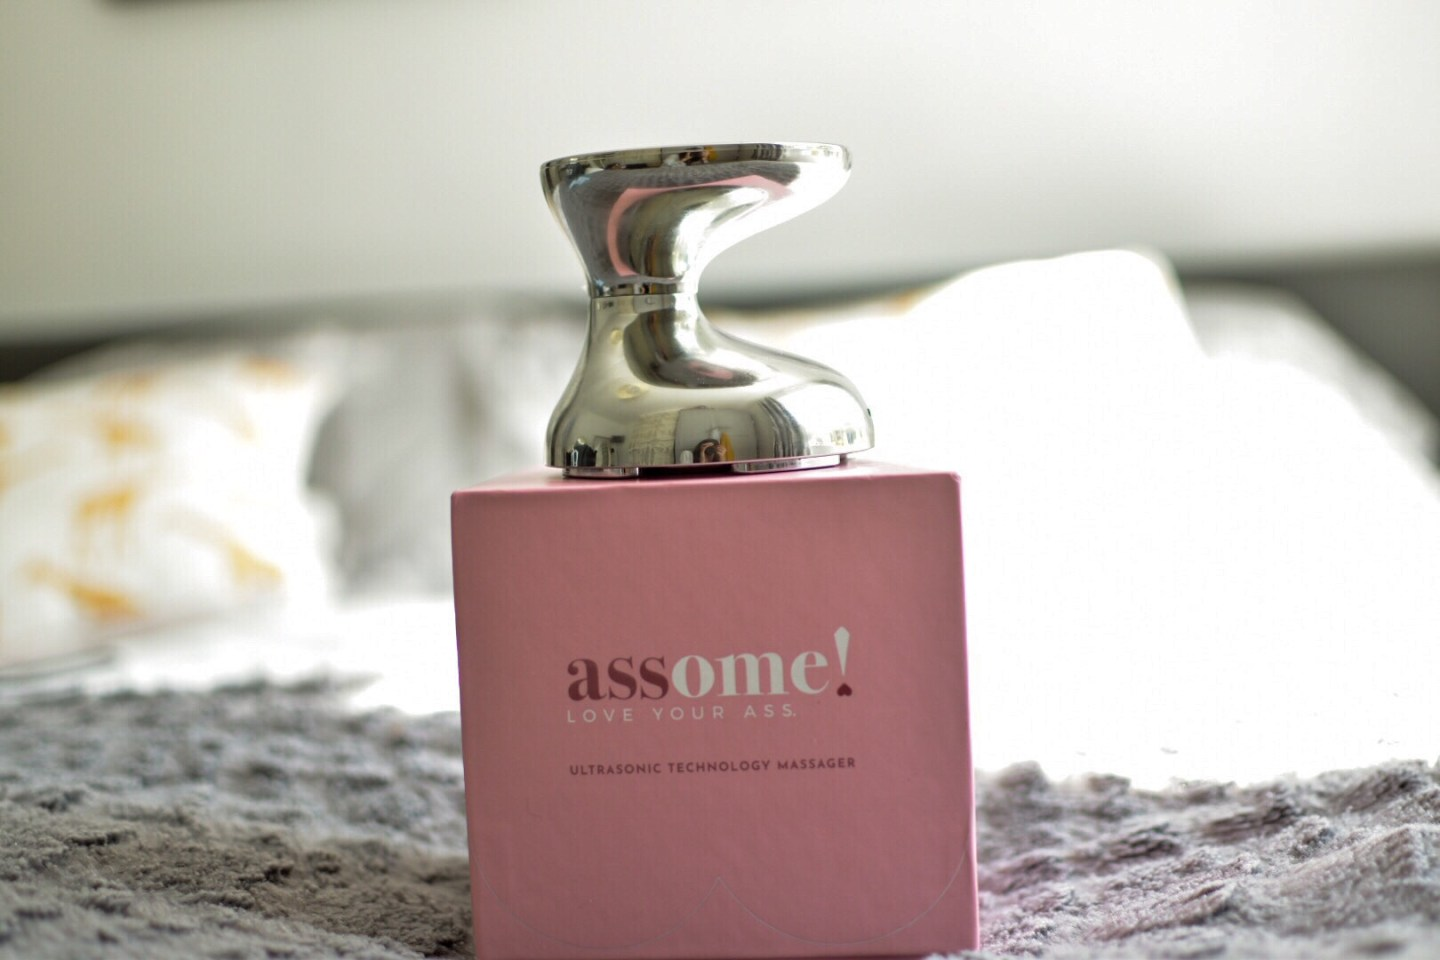 testing out the Introducing the ASSOME! Ultrasonic Massager to help achieve the perfect bum